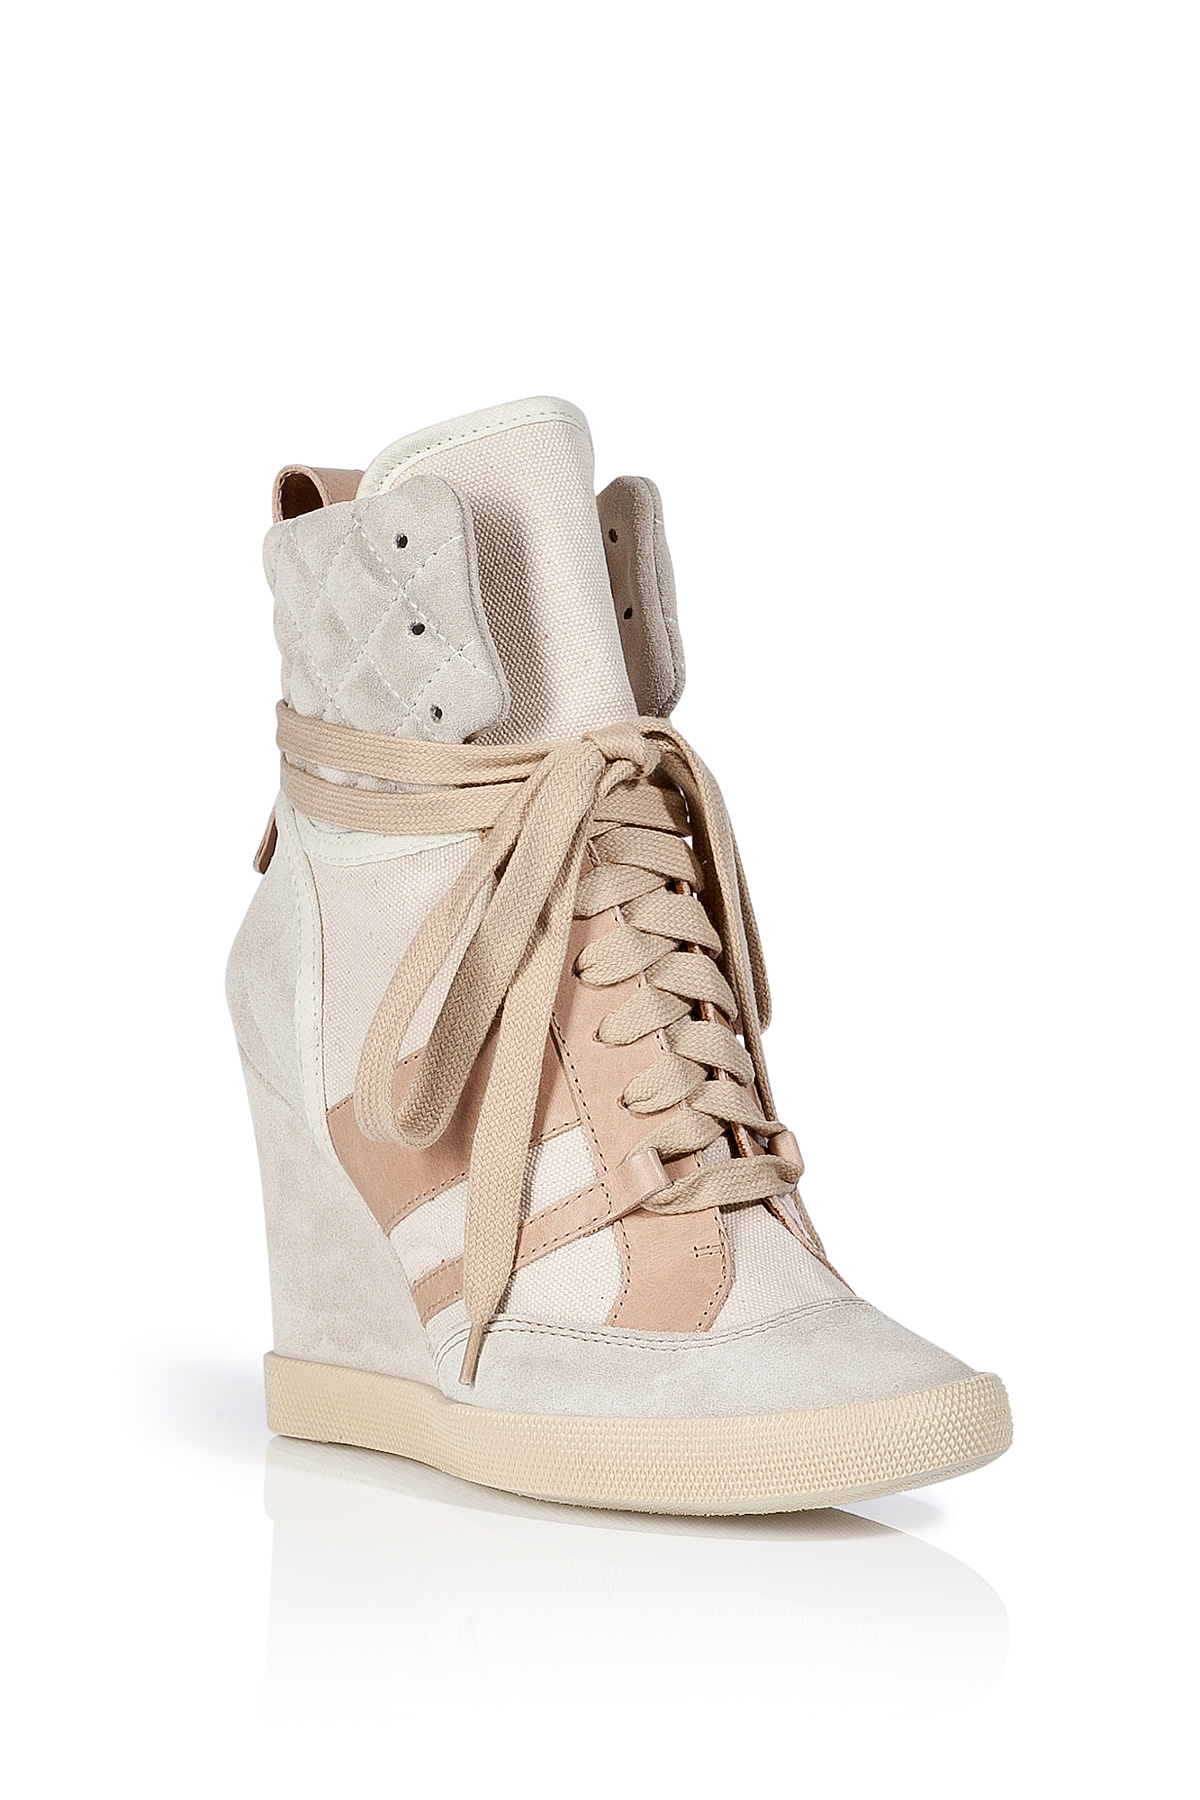 chlo creamblush leathercanvas wedge sneakers in natural lyst. Black Bedroom Furniture Sets. Home Design Ideas